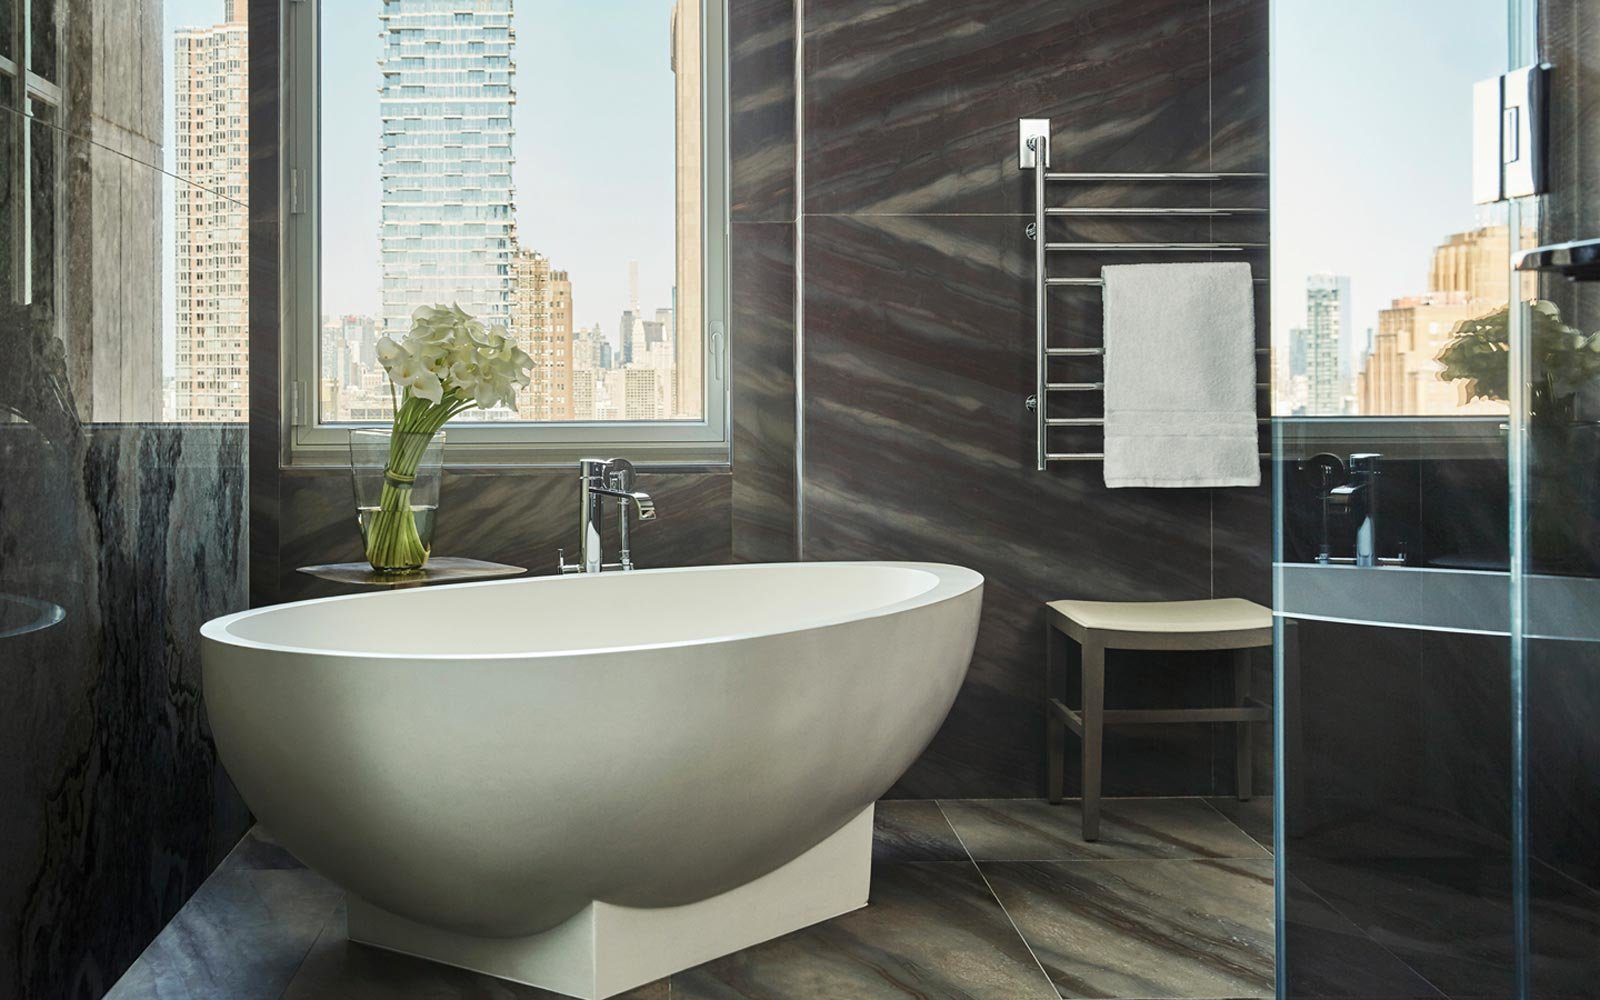 Bathtub in the suite at the Four Seasons New York Downtown